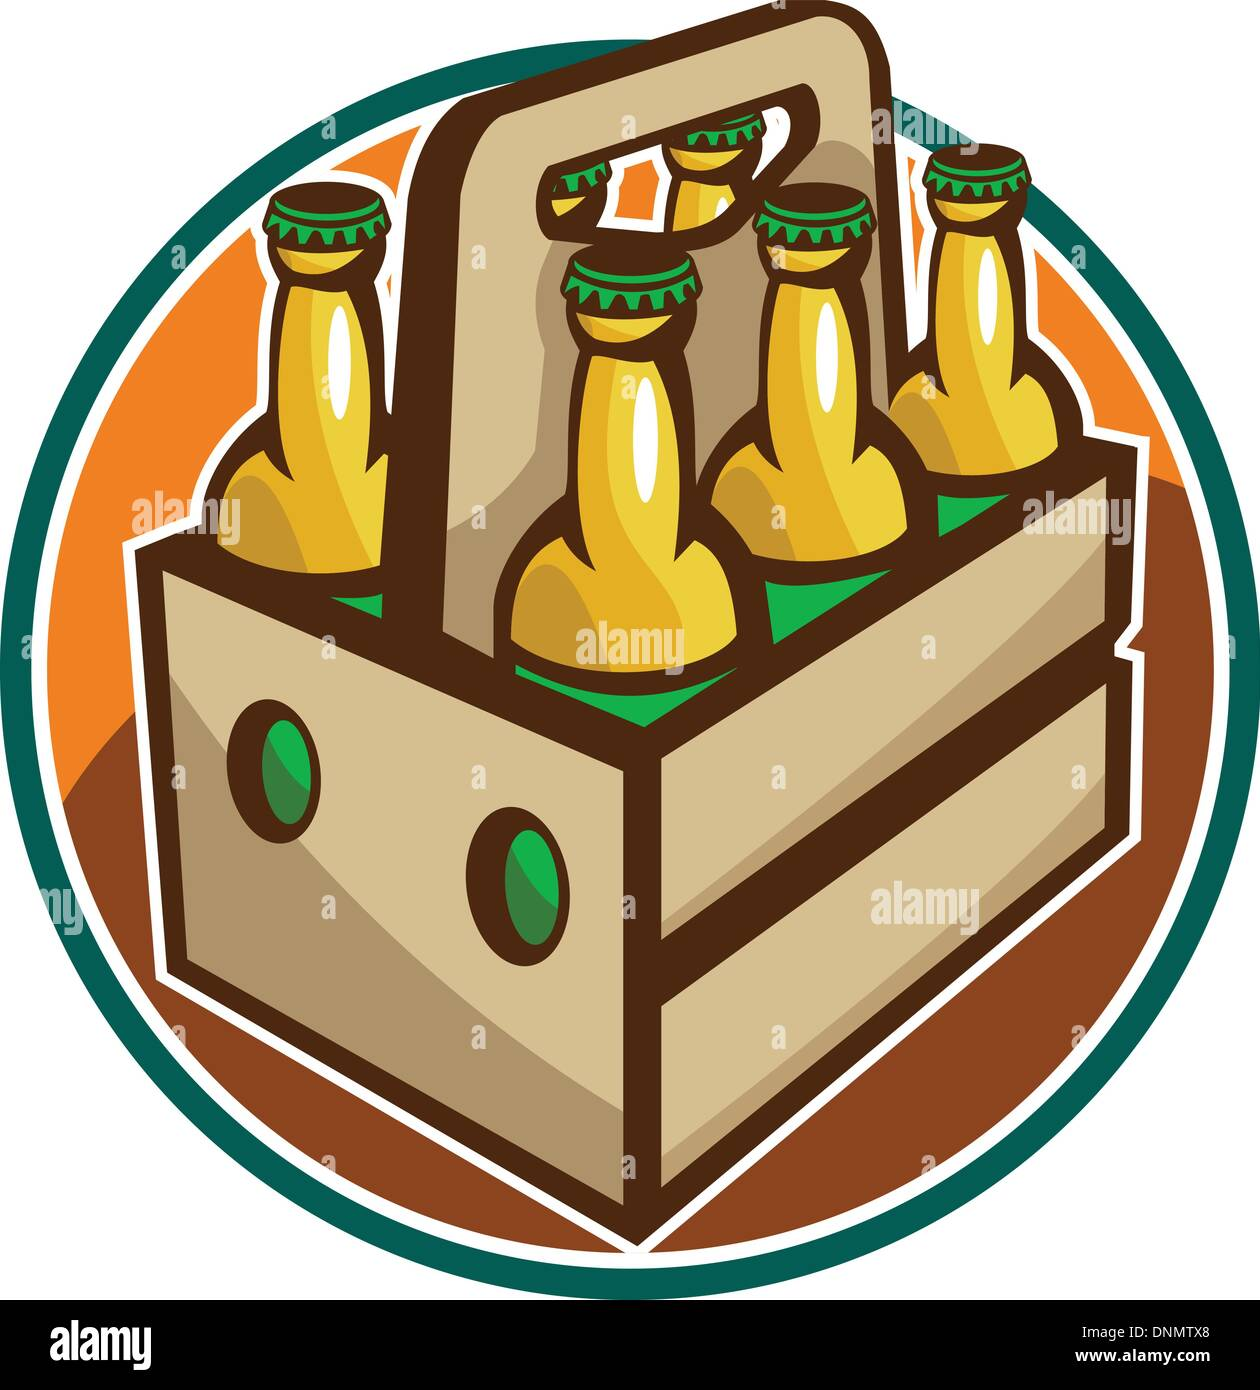 Illustration of a 6 pack case crate of beer set inside circle done in retro style. Stock Vector